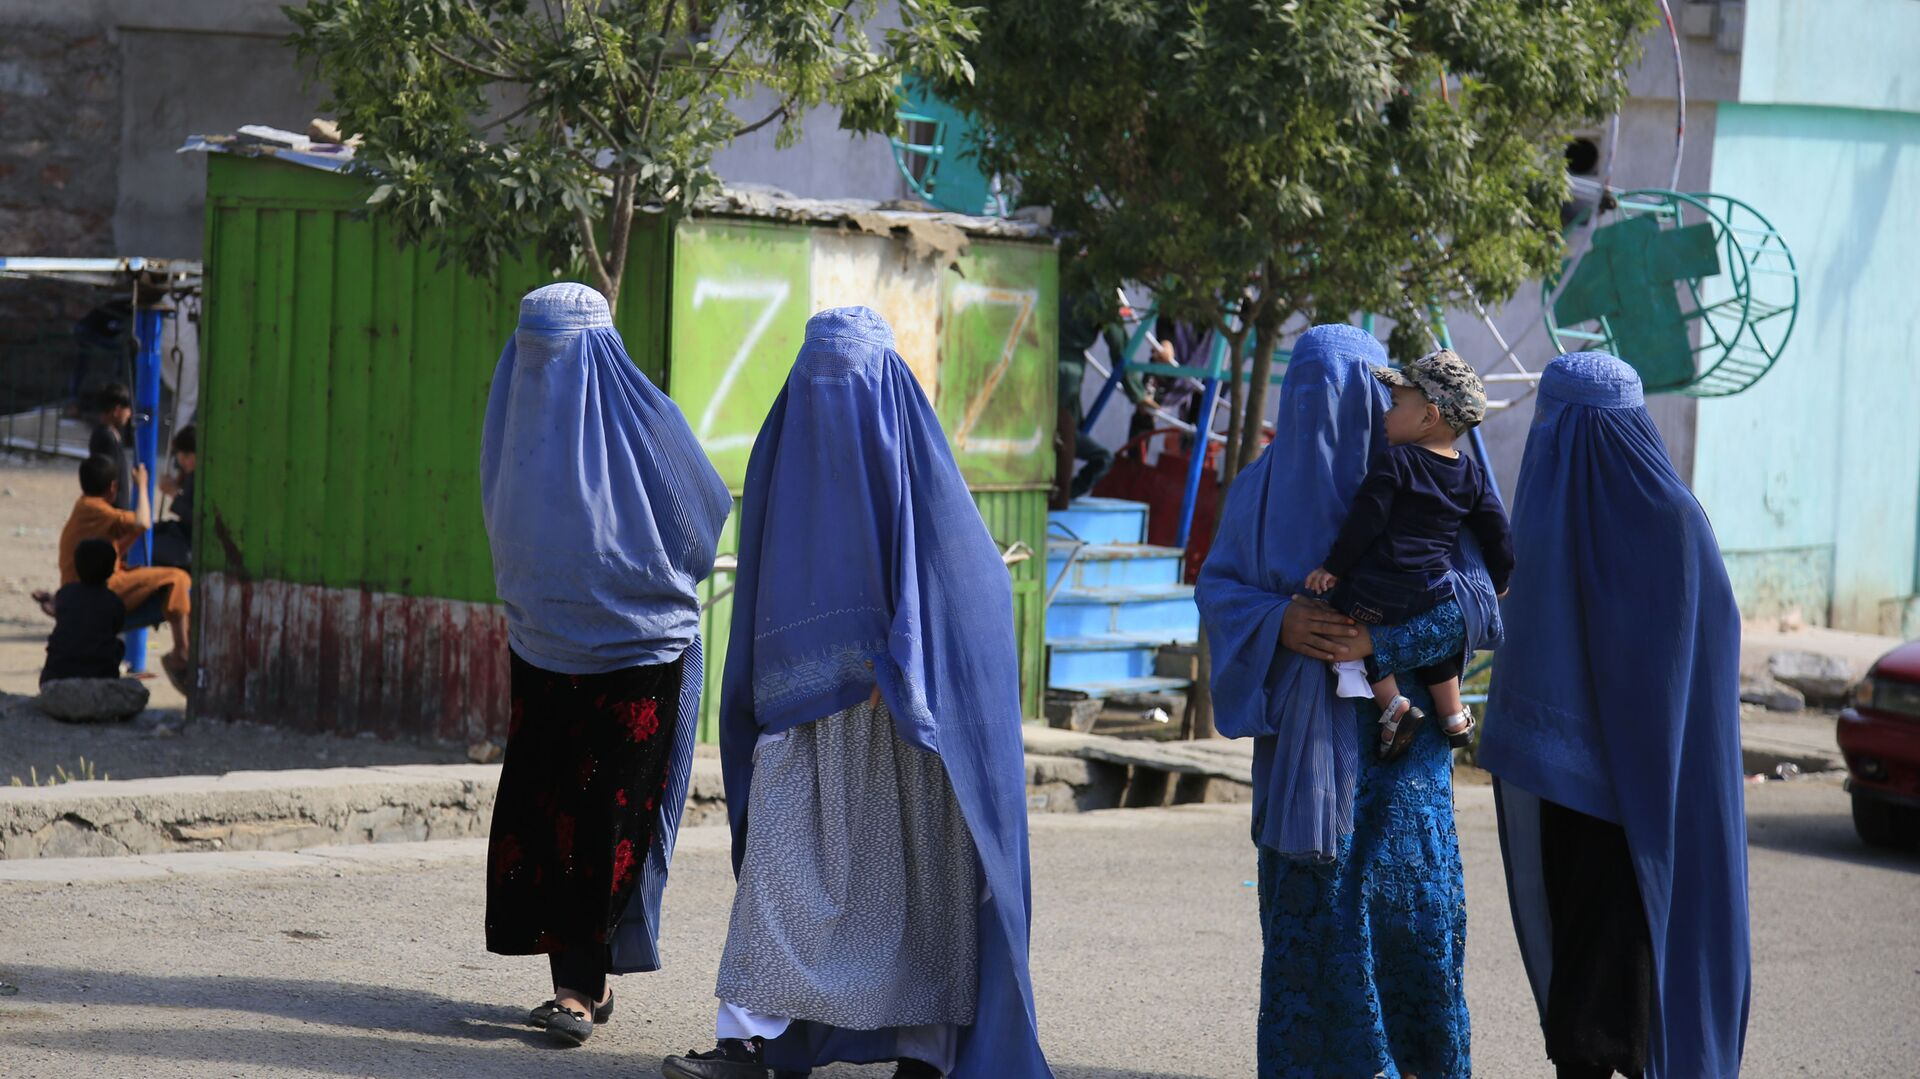 Afghan women walk on the road during the first day of Eid al-Fitr in Kabul, Afghanistan, Thursday, May 13, 2021 - Sputnik International, 1920, 02.08.2021